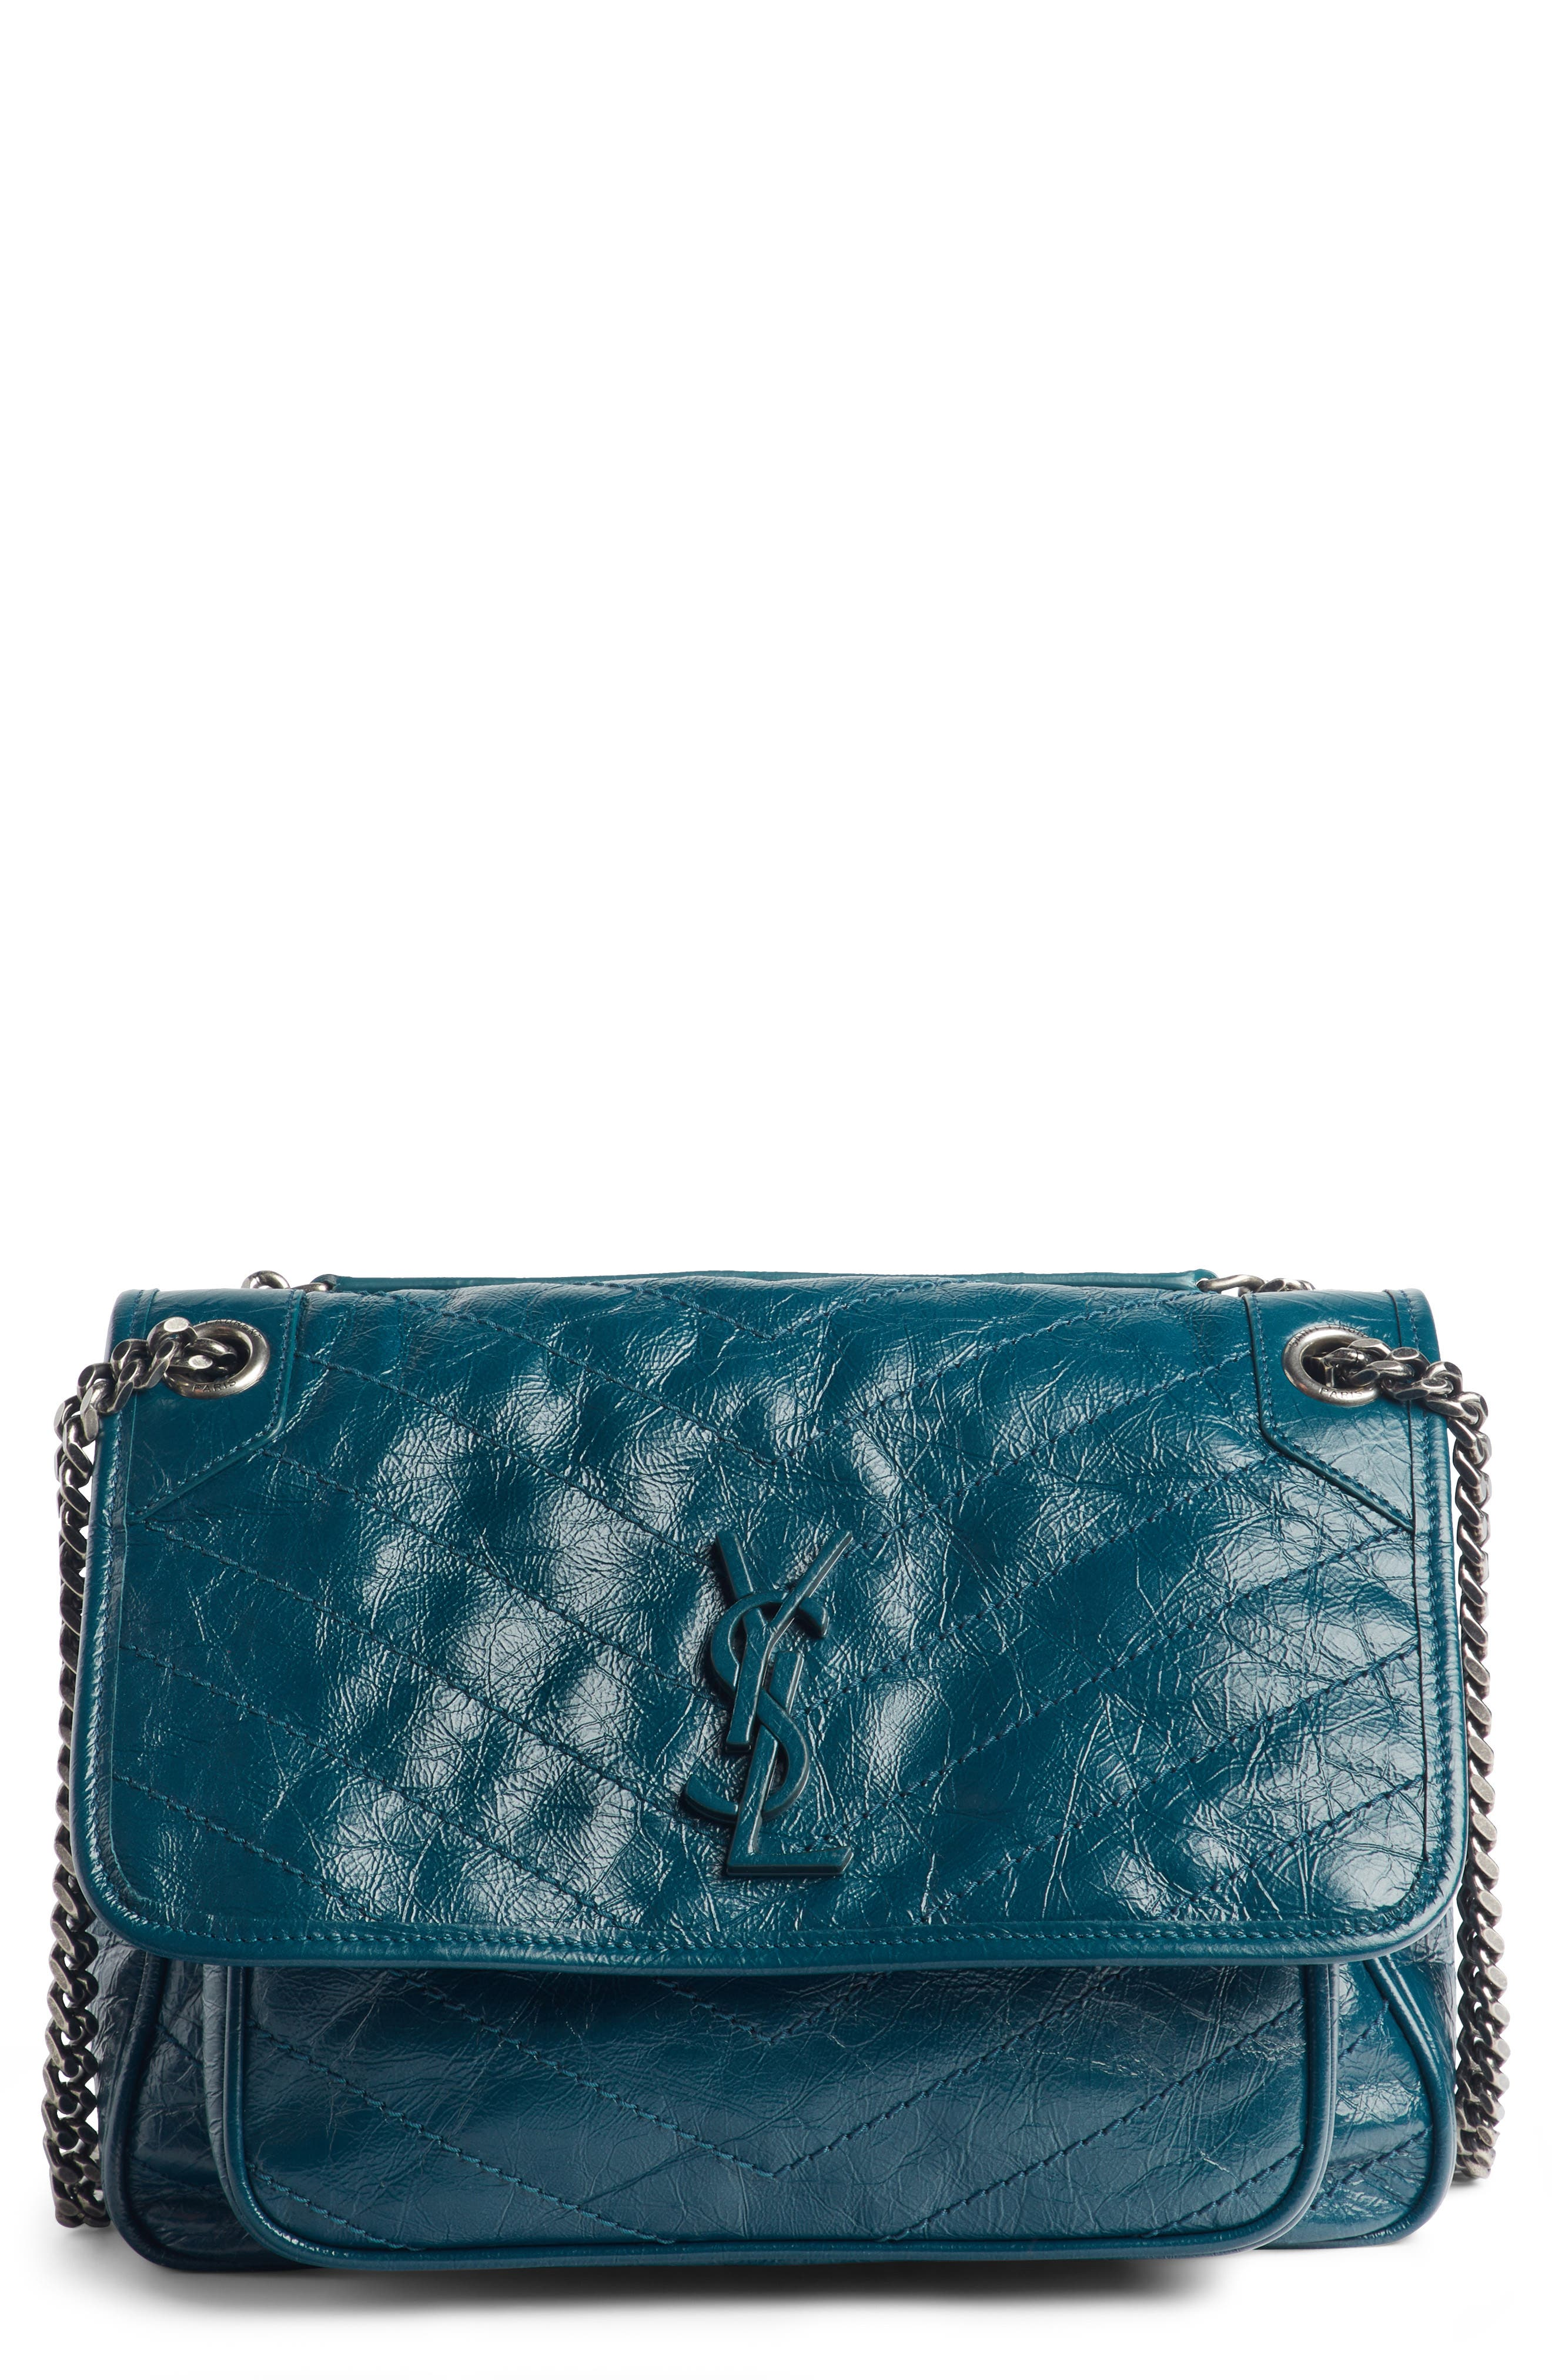 Medium Niki Leather Shoulder Bag,                         Main,                         color, Dark Turquoise